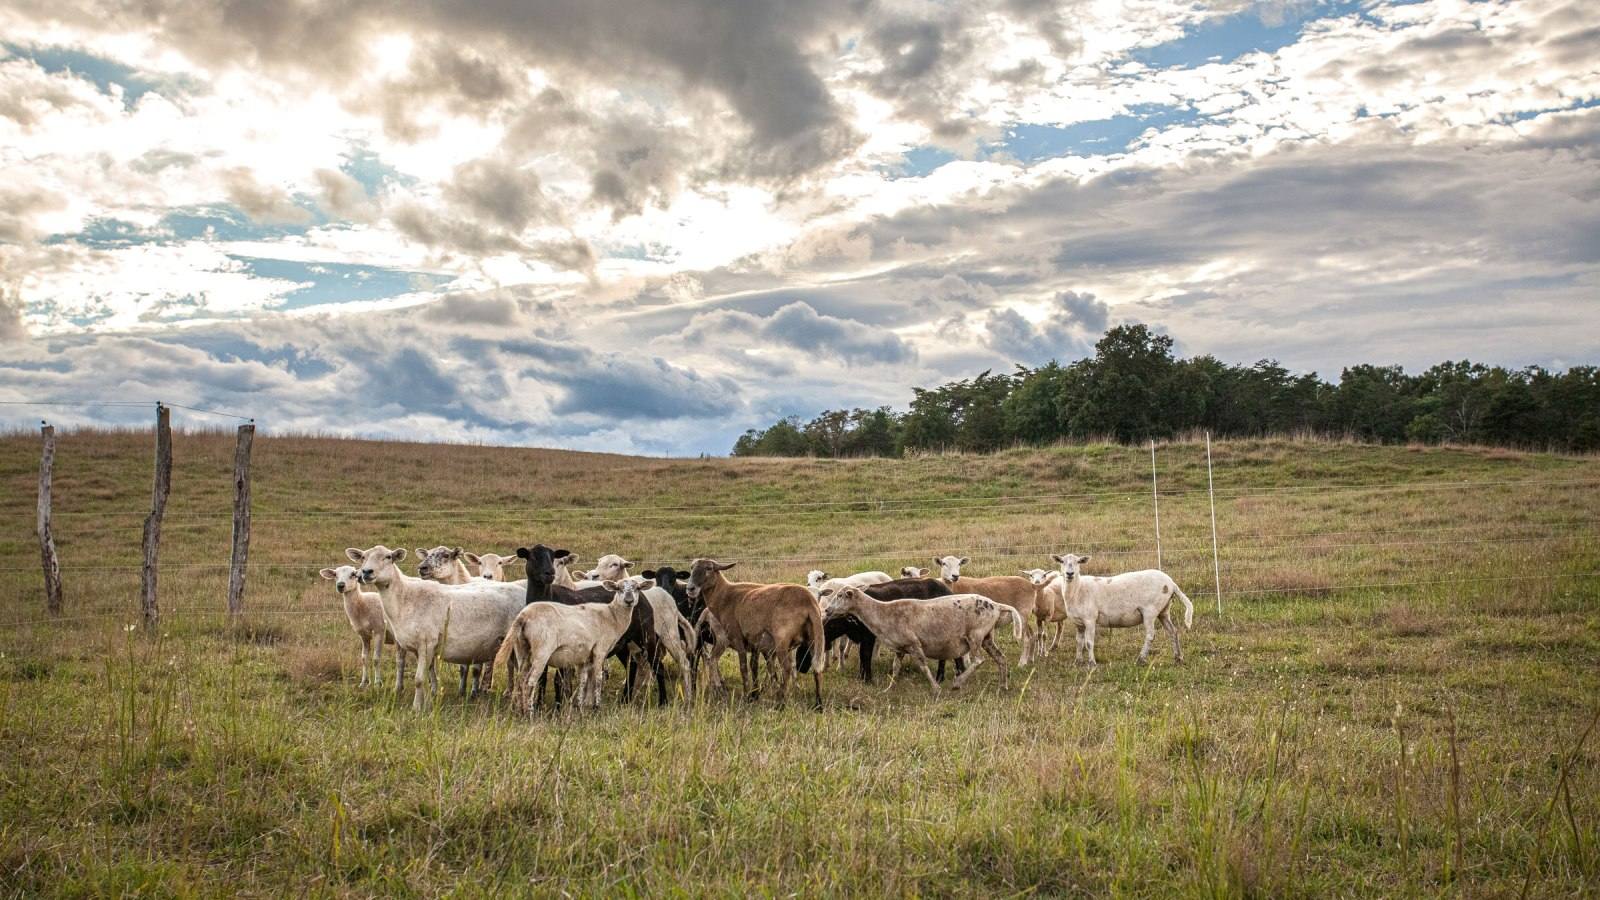 Livestock gather near the fence line